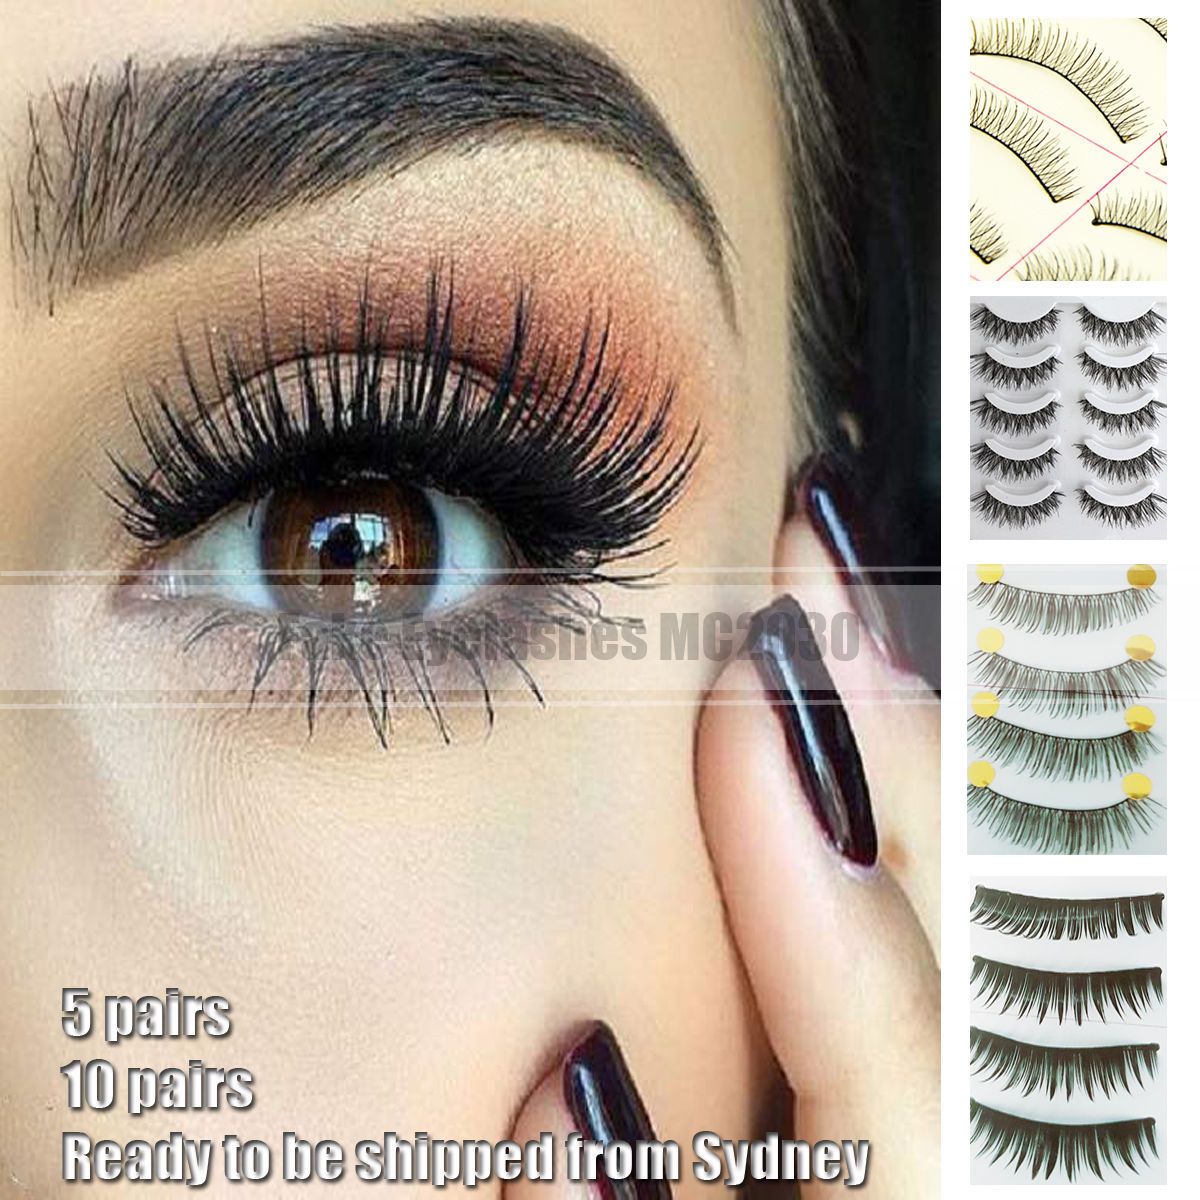 Top 5 False Eyelashes For Naturally DramaticEyes recommend